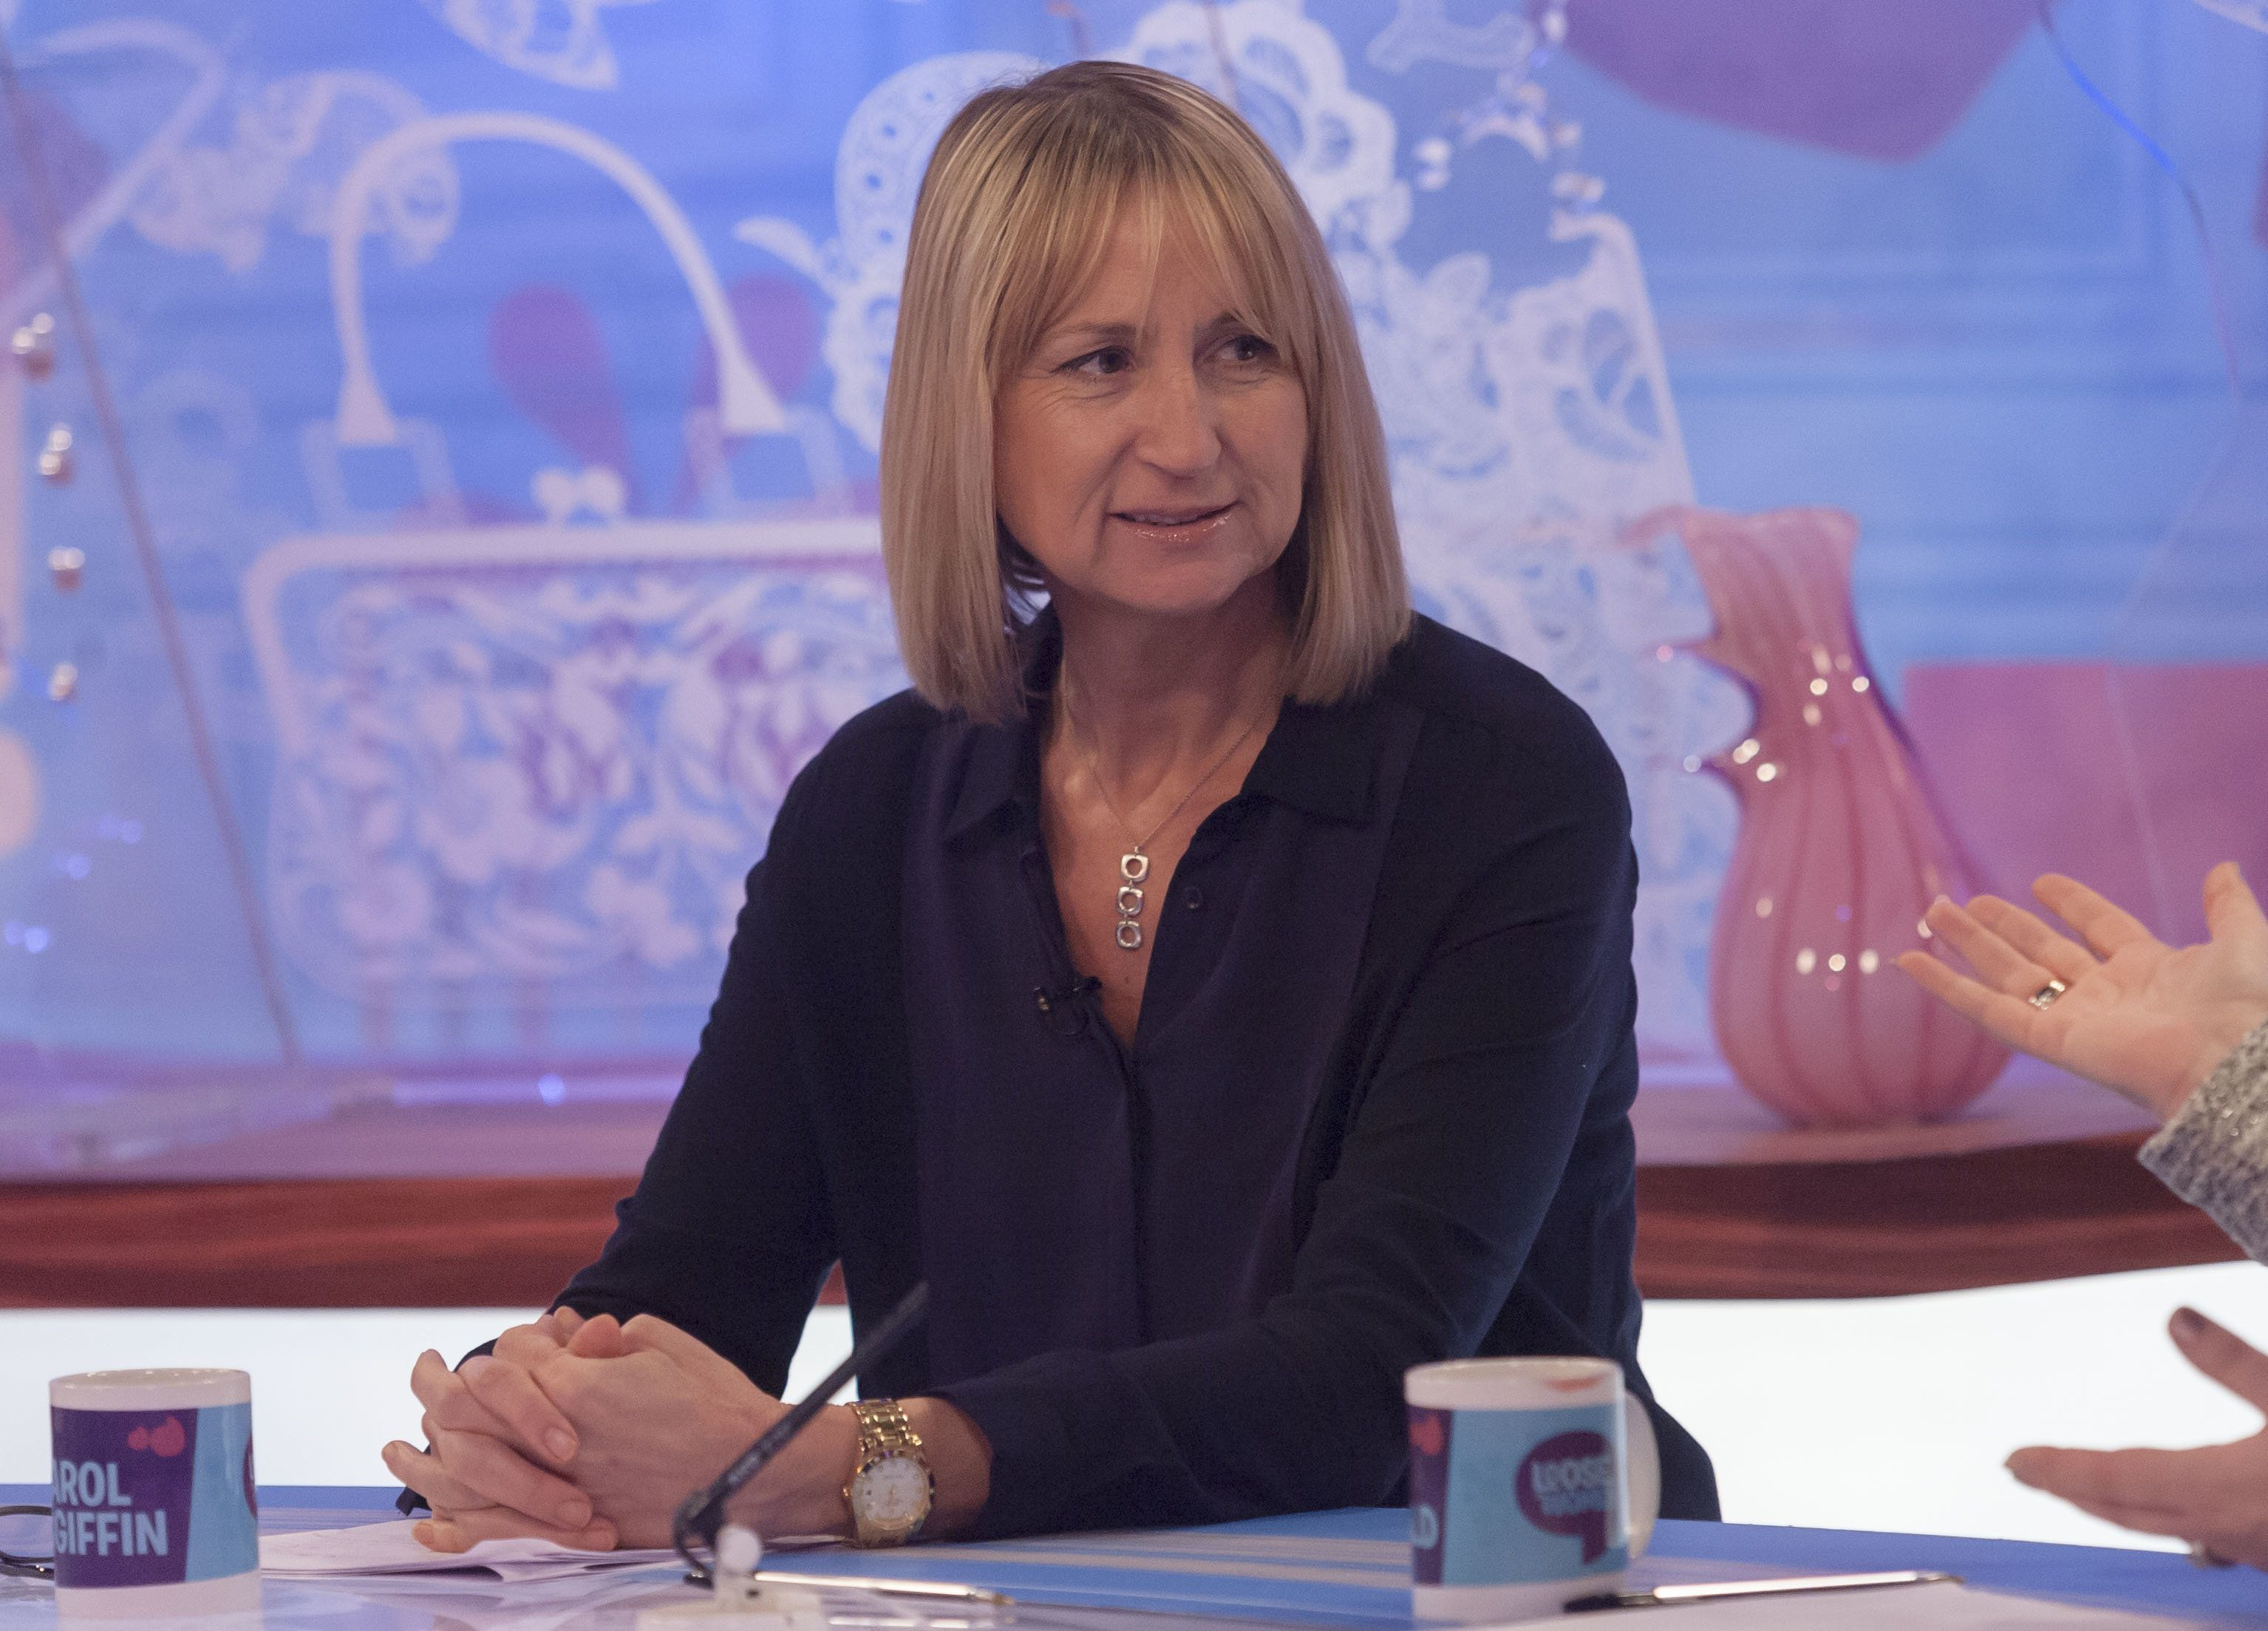 Carol McGiffin Launches Attack On 'Loose Women' After She's Left Out Of 18th Birthday